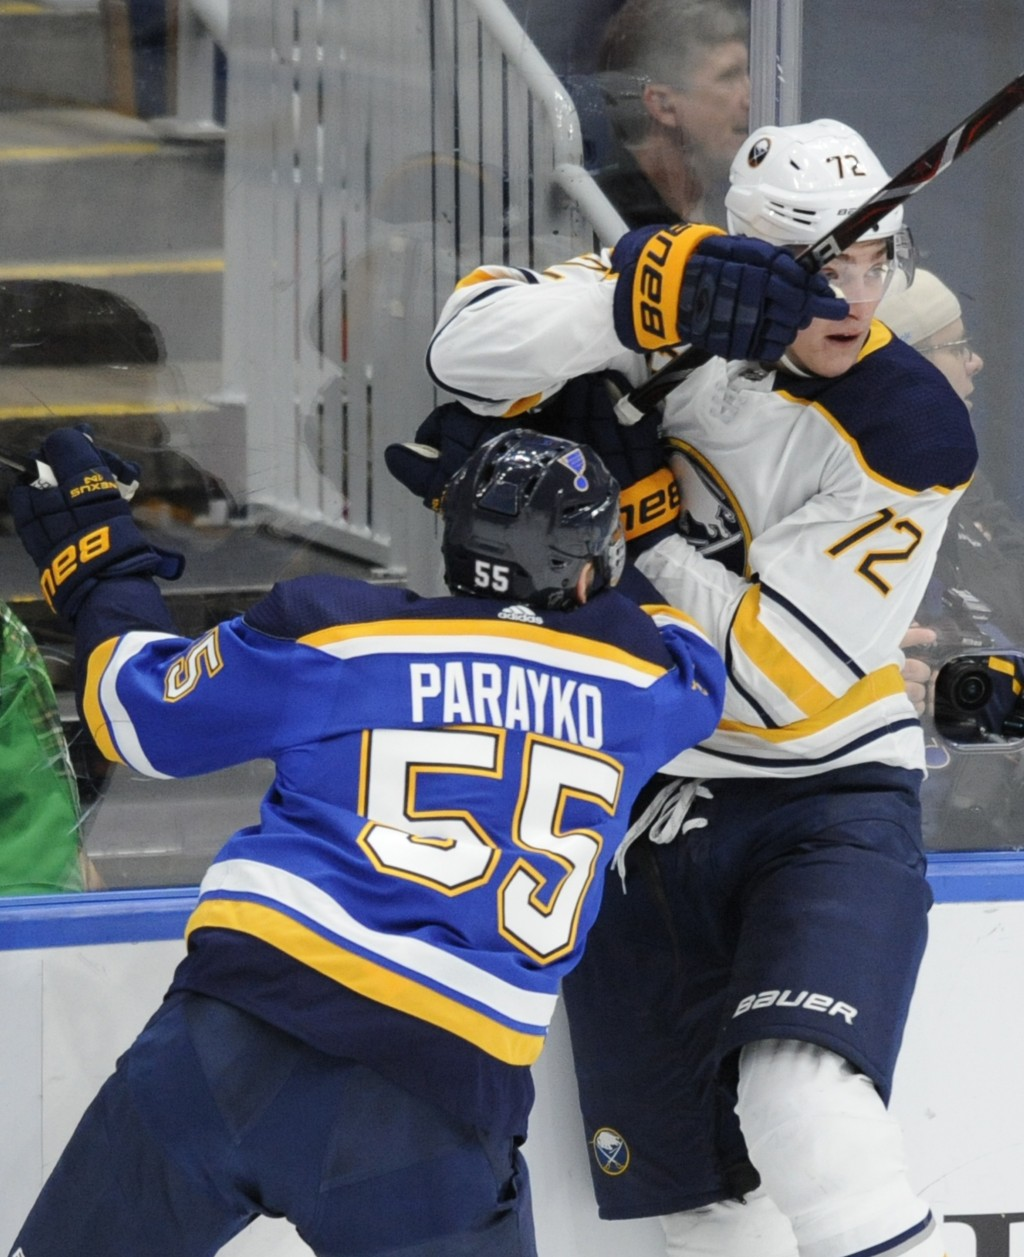 St. Louis Blues' Colton Parayko (55) collides with Buffalo Sabres' Tage Thompson (72) during the first period of an NHL hockey game, Thursday, Dec. 27...